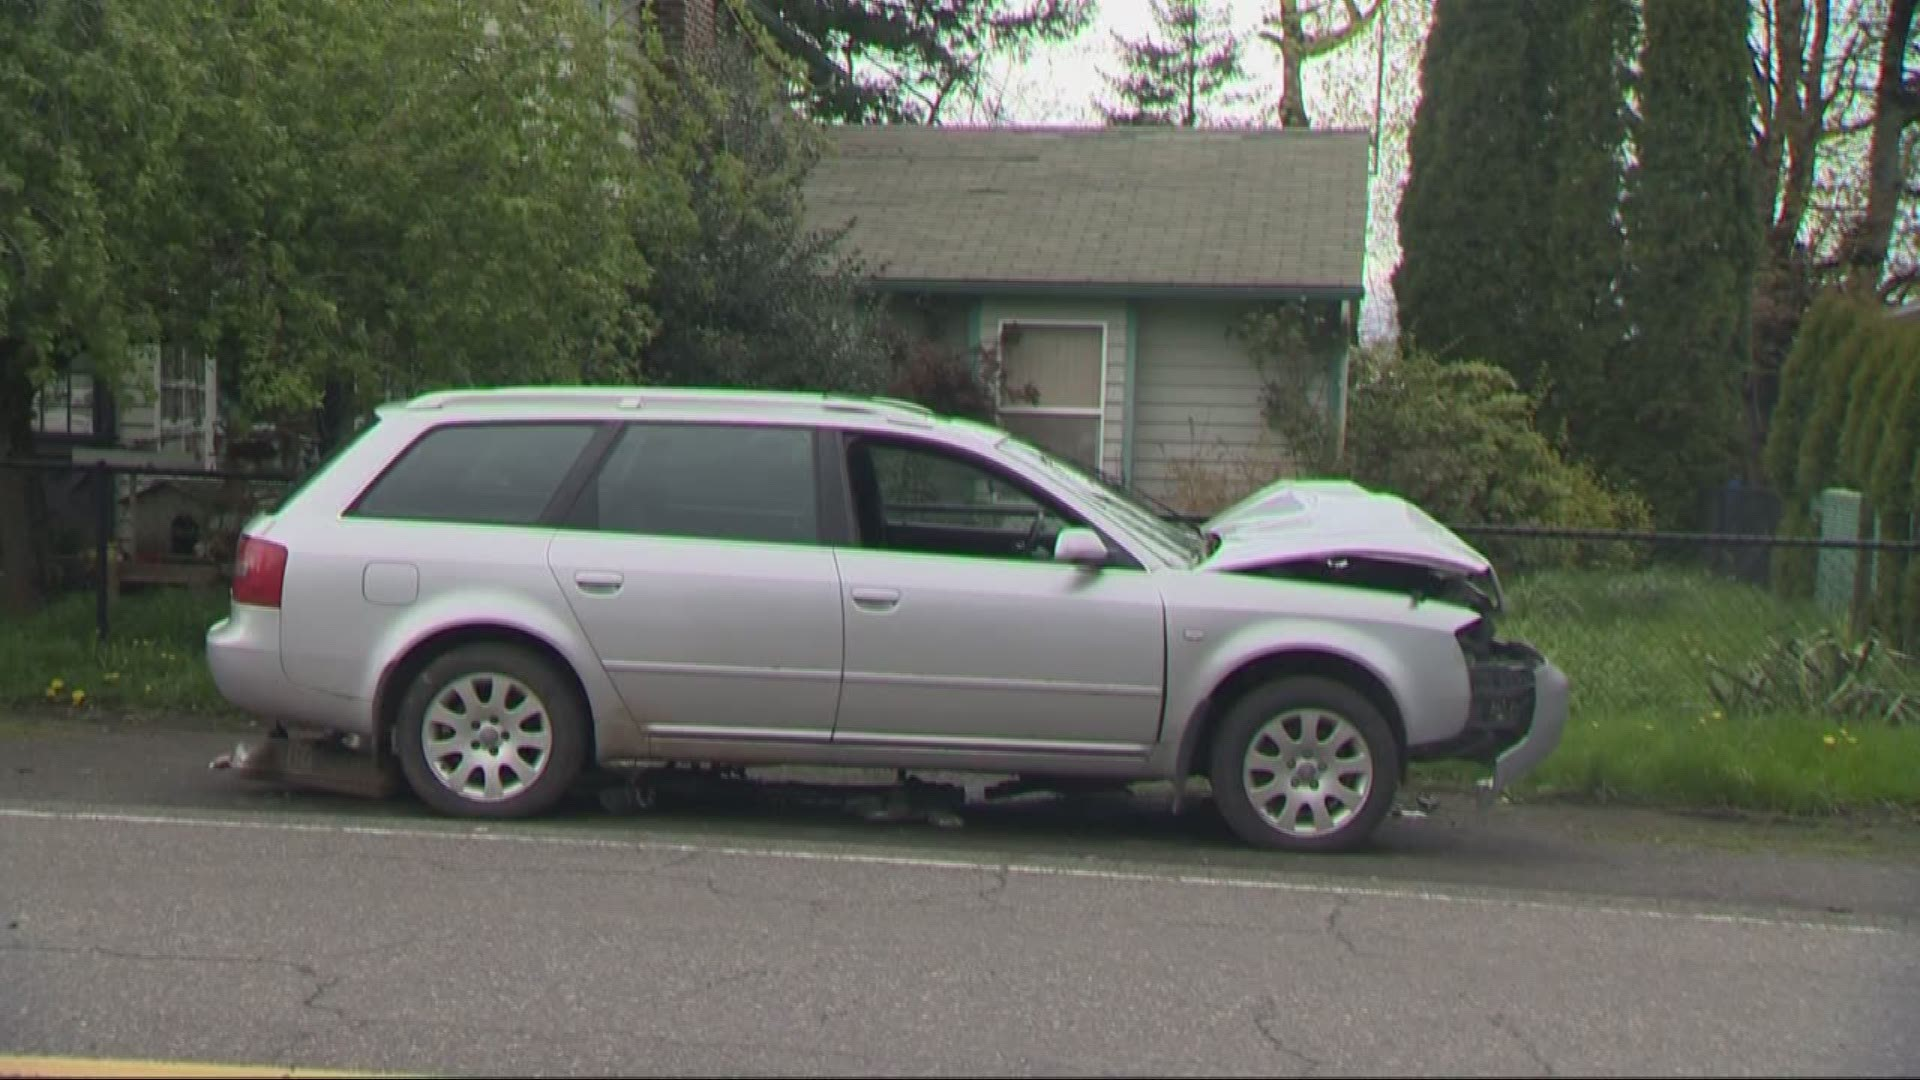 27 000 Reports Of Abandoned Cars In Portland Last Year Kgw Com